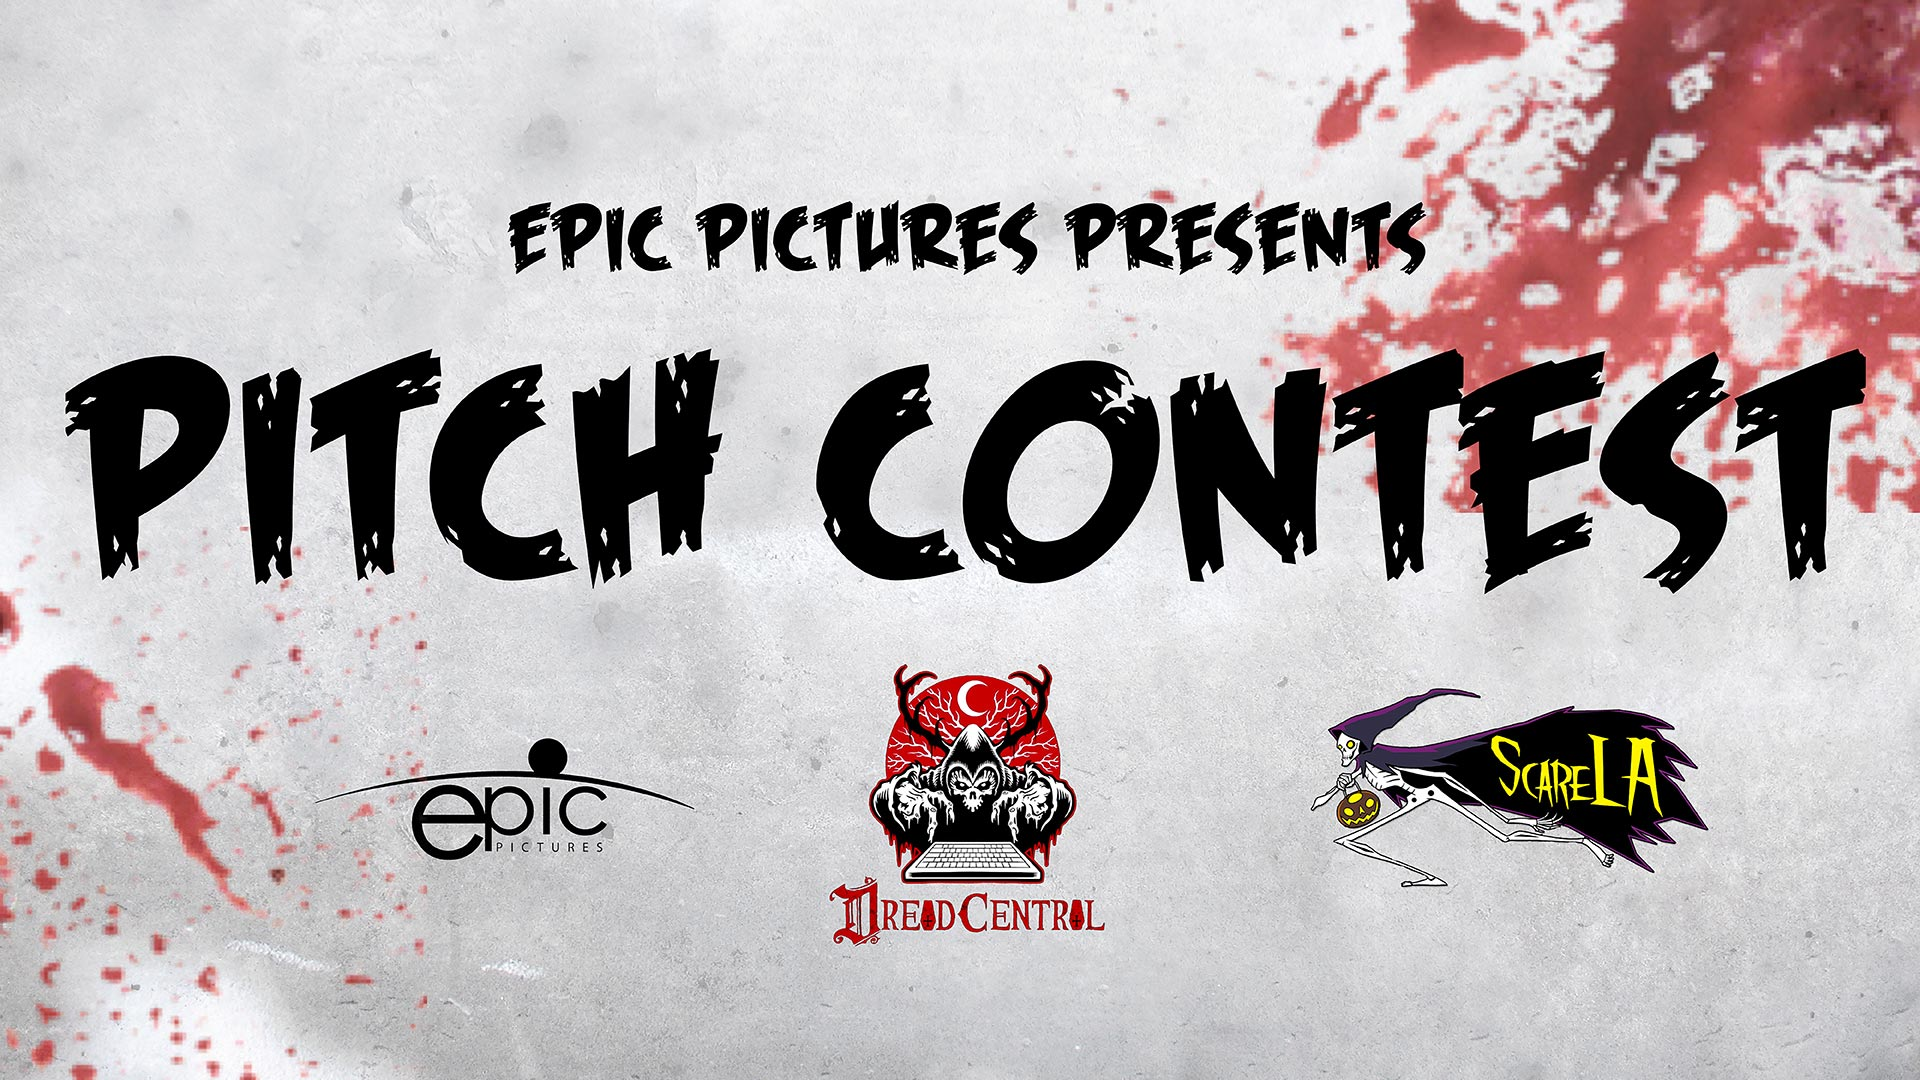 epicdreadscarela pitchcontest2017 - Announcing the Winners of the Epic Pictures/Dread Central/ScareLA Pitch Contest!